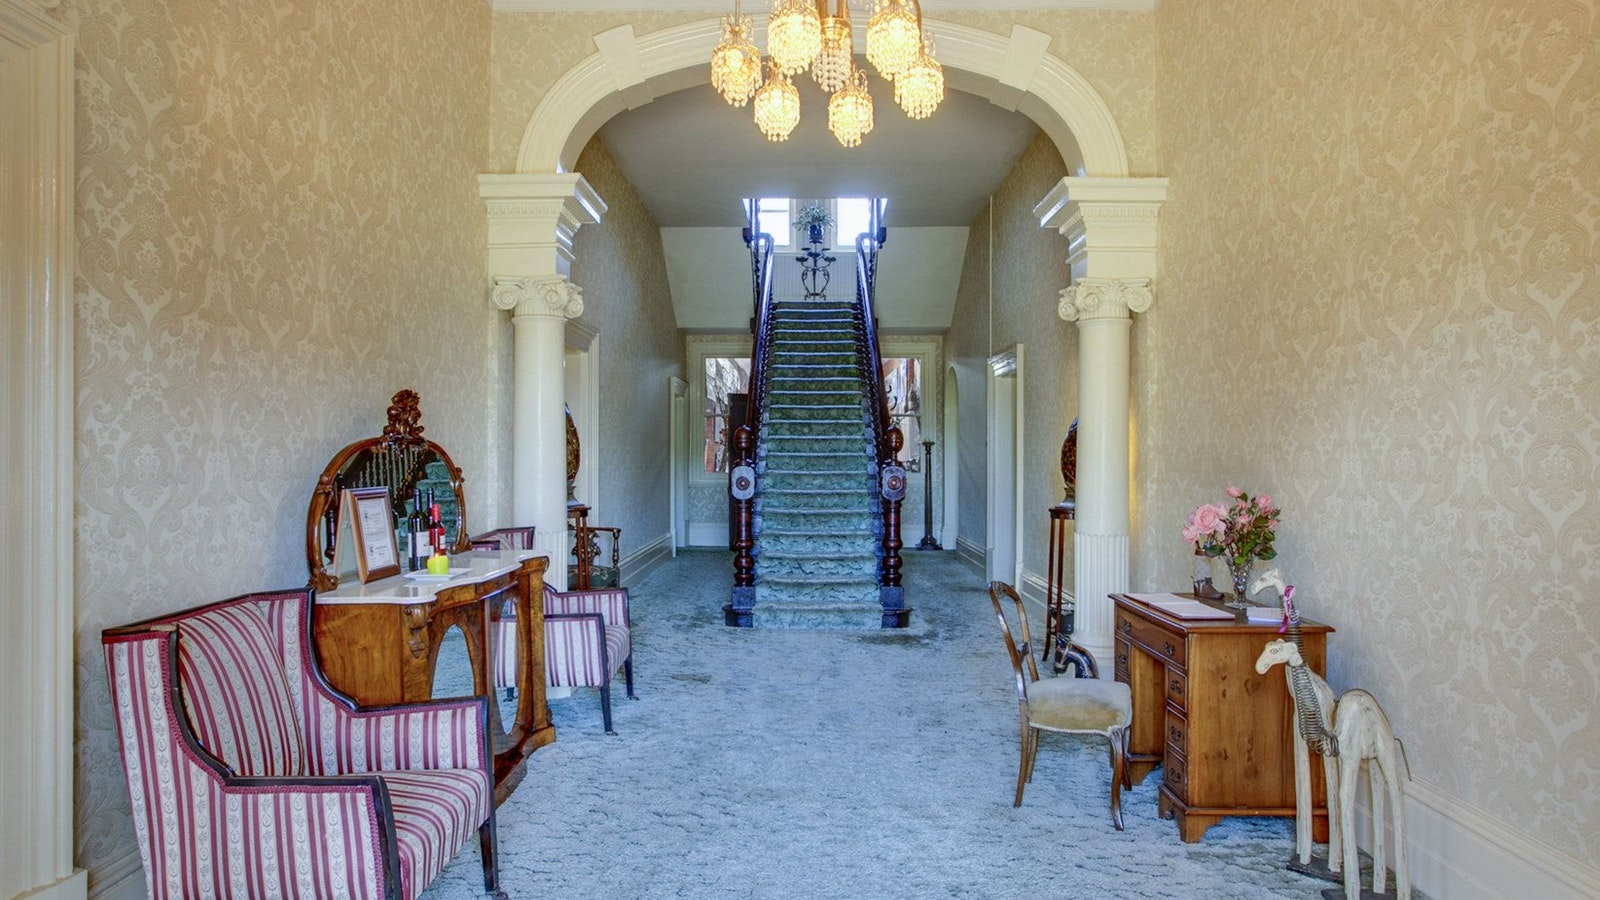 Highton Manor interior